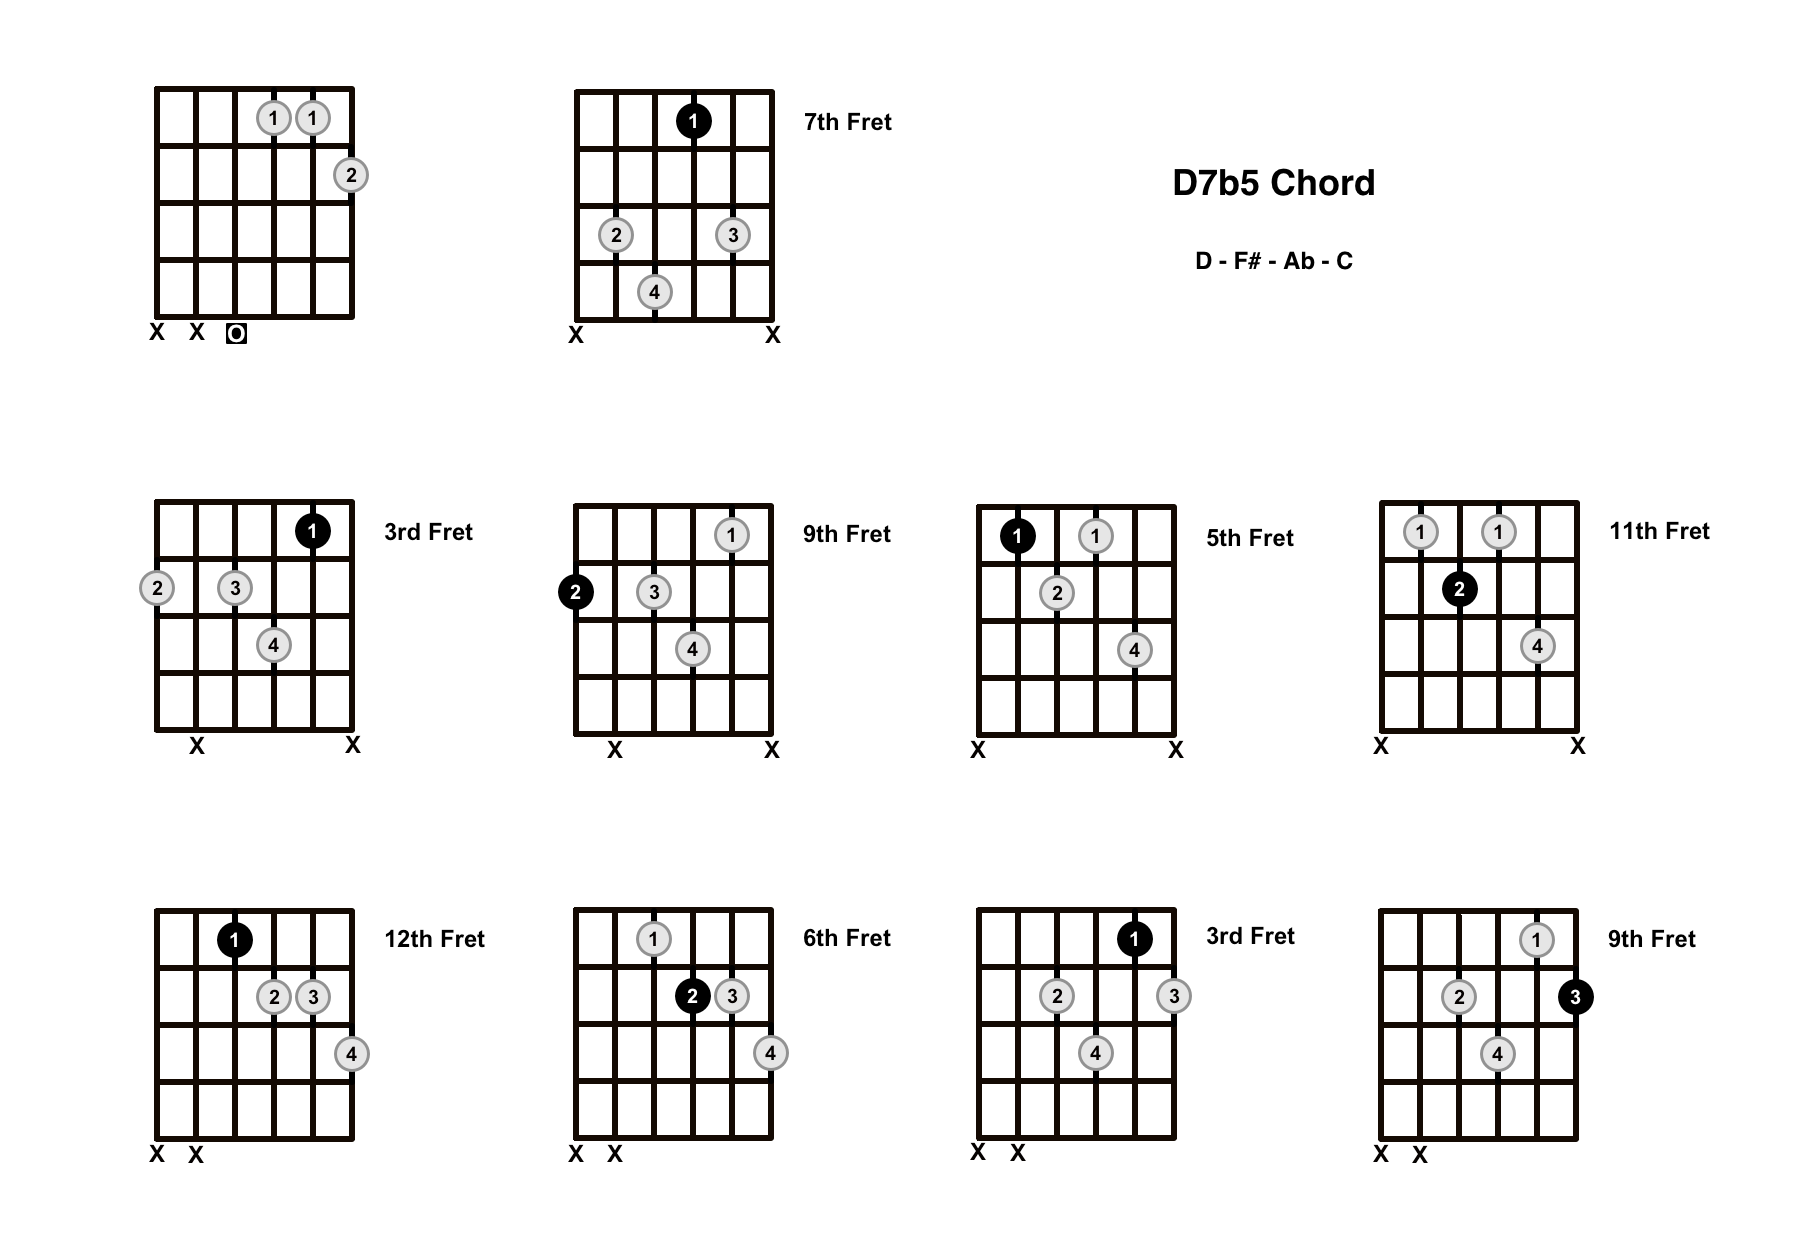 D7b5 Chord On The Guitar (D Dominant 7 Flat 5) – Diagrams, Finger Positions and Theory